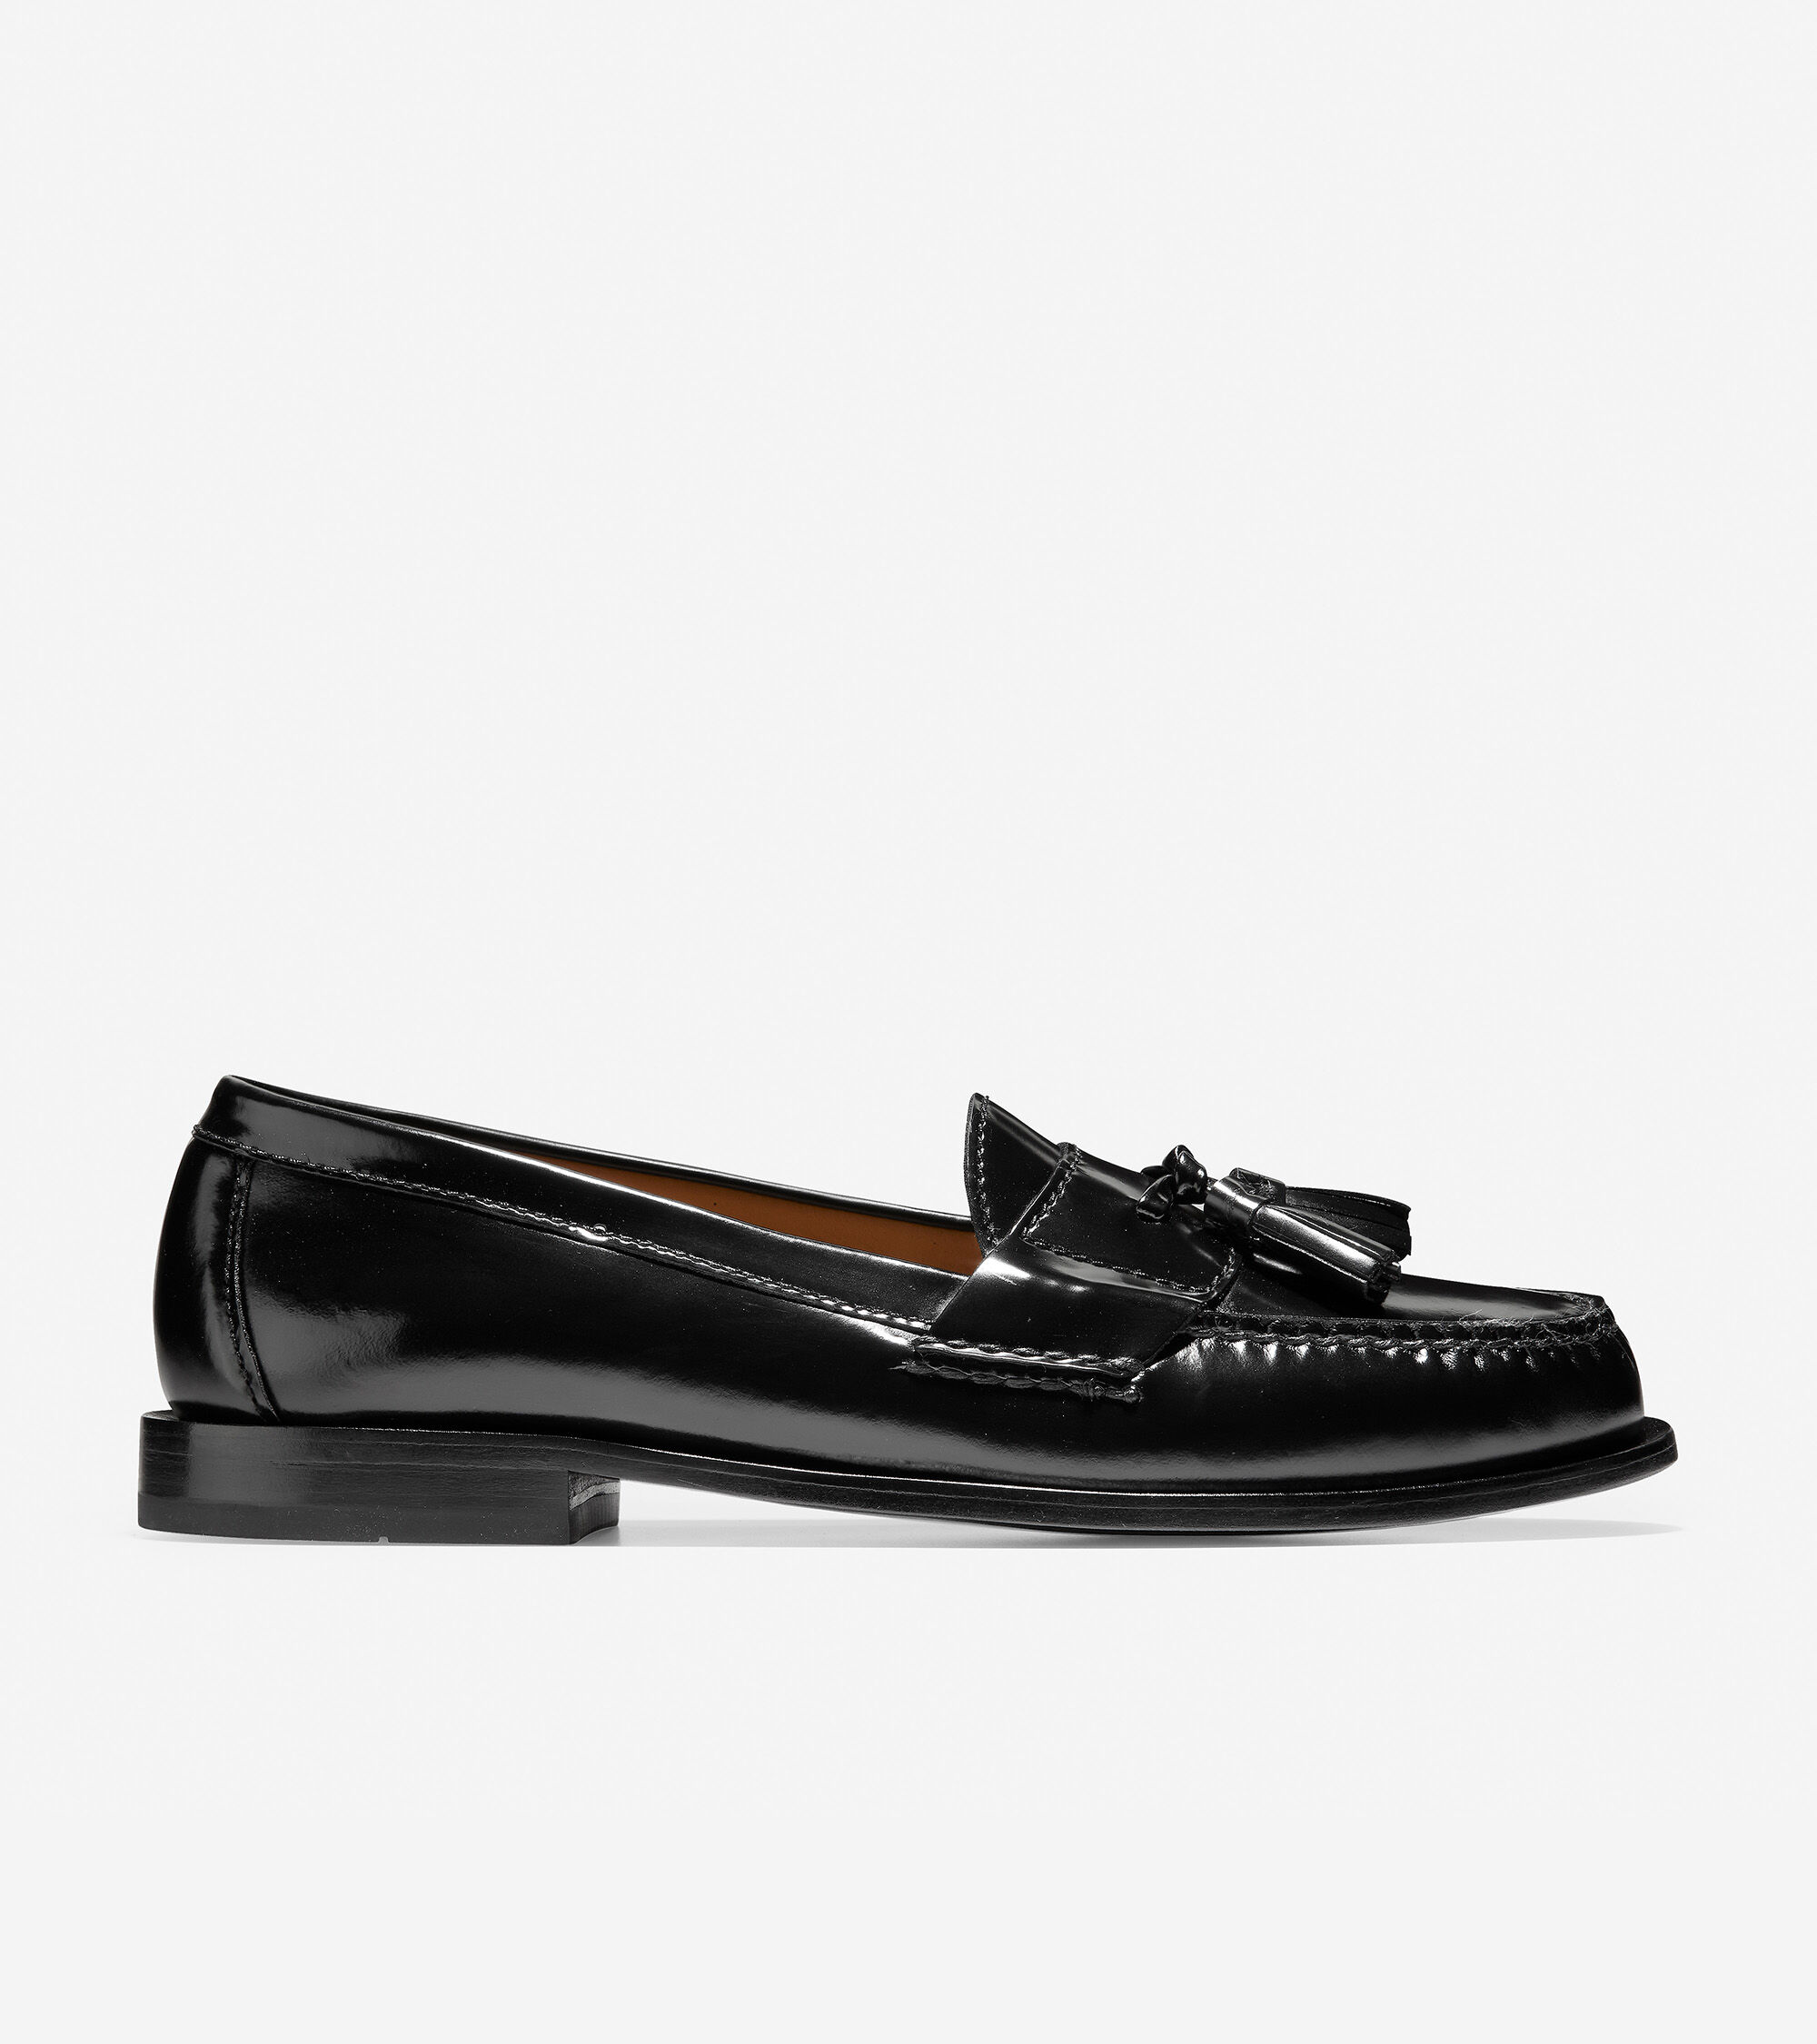 Hand-antiqued, brush-off leather upper. Genuine hand sewn on the last moccasin construction. Fully leather lined. Leather sole with combination stacked leather heel.